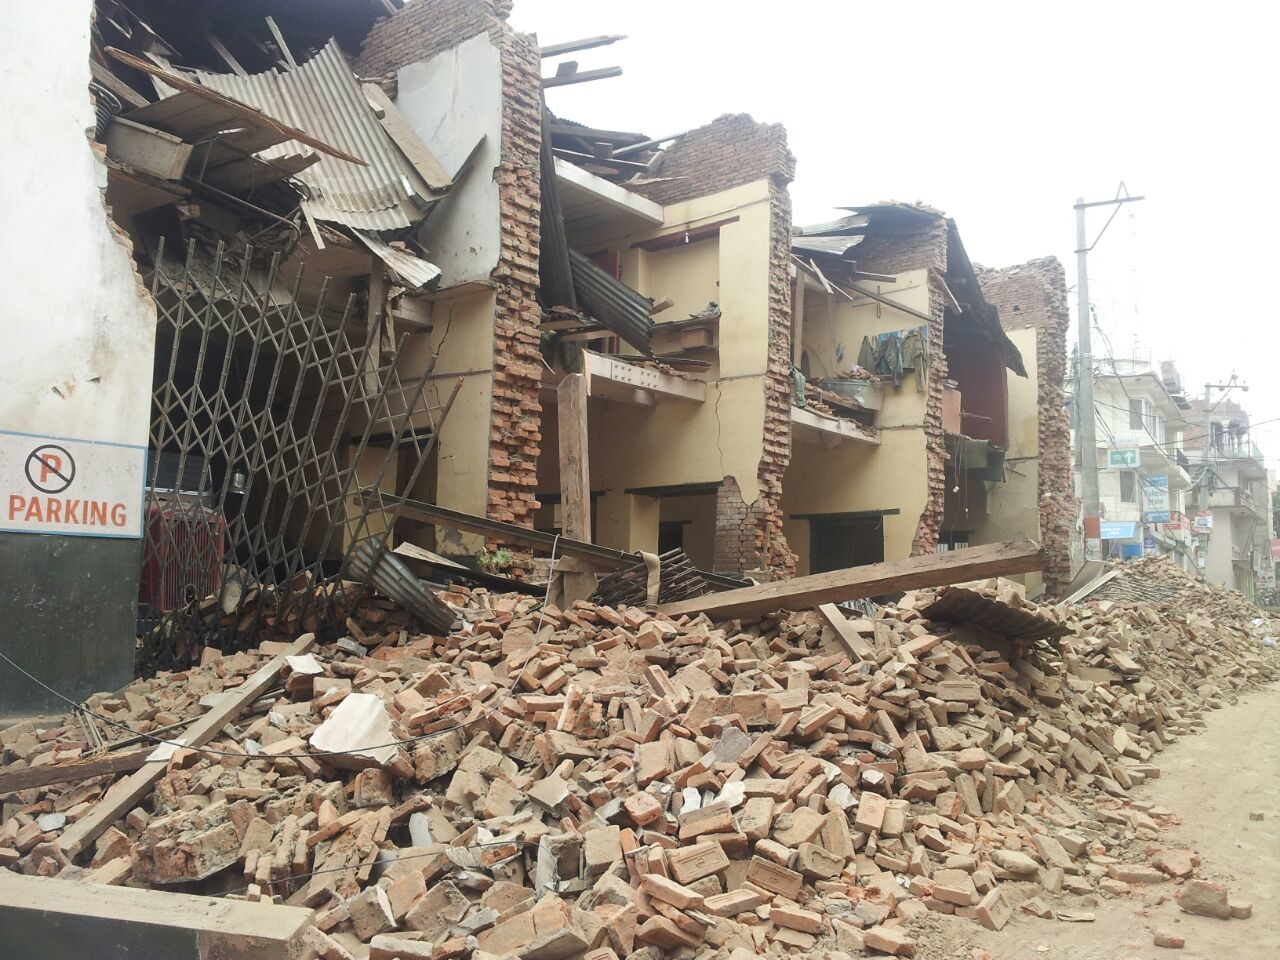 Buildings collapsed and hundreds are dead in Nepal after a 7.8 magnitude earthquake struck Saturday. PHOTO: World Vision